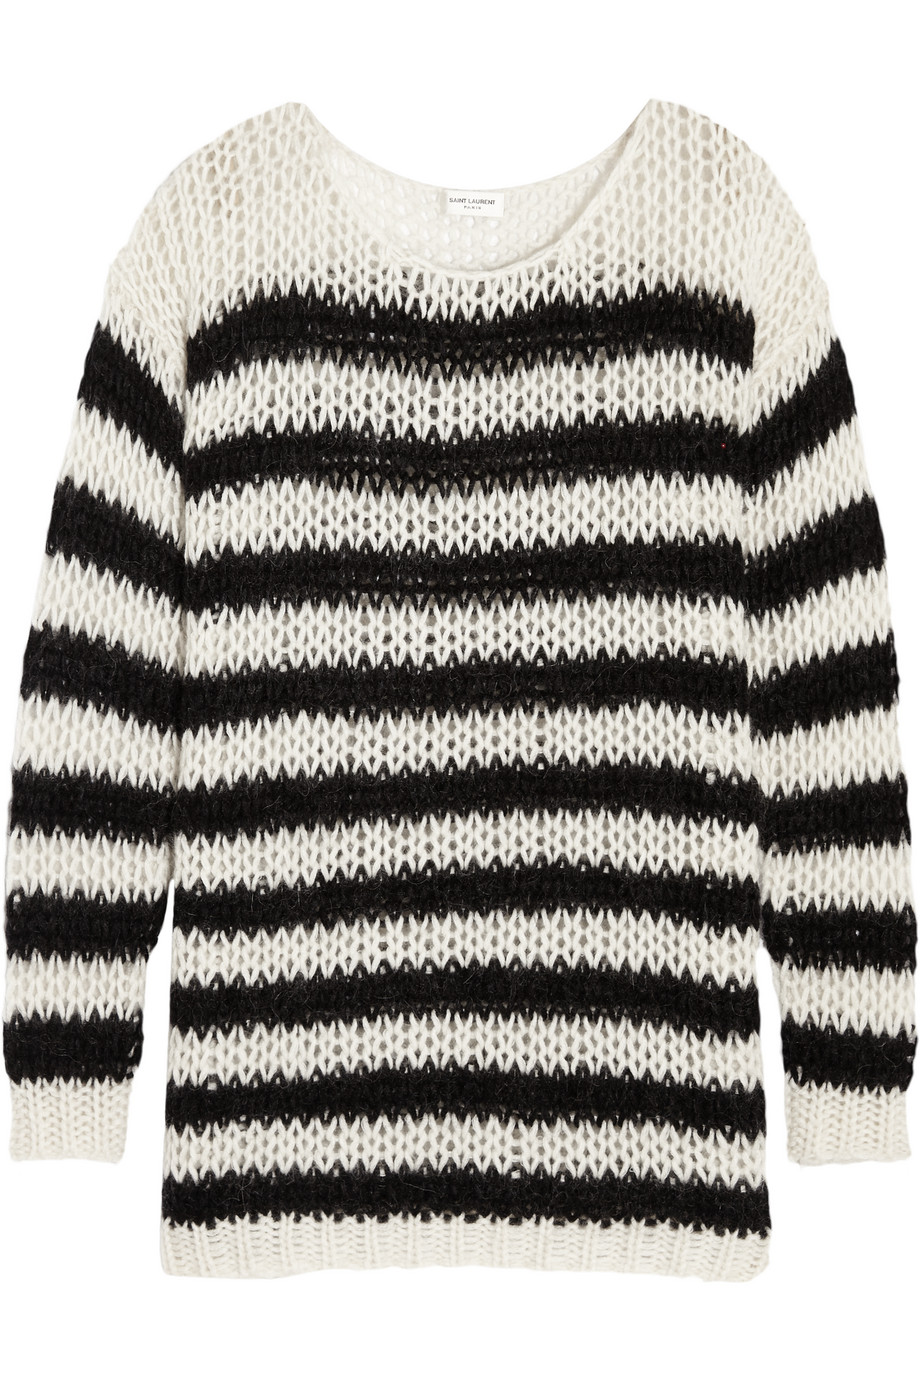 Saint Laurent Striped Wool-Blend Sweater, Off-White, Women's, Size: M